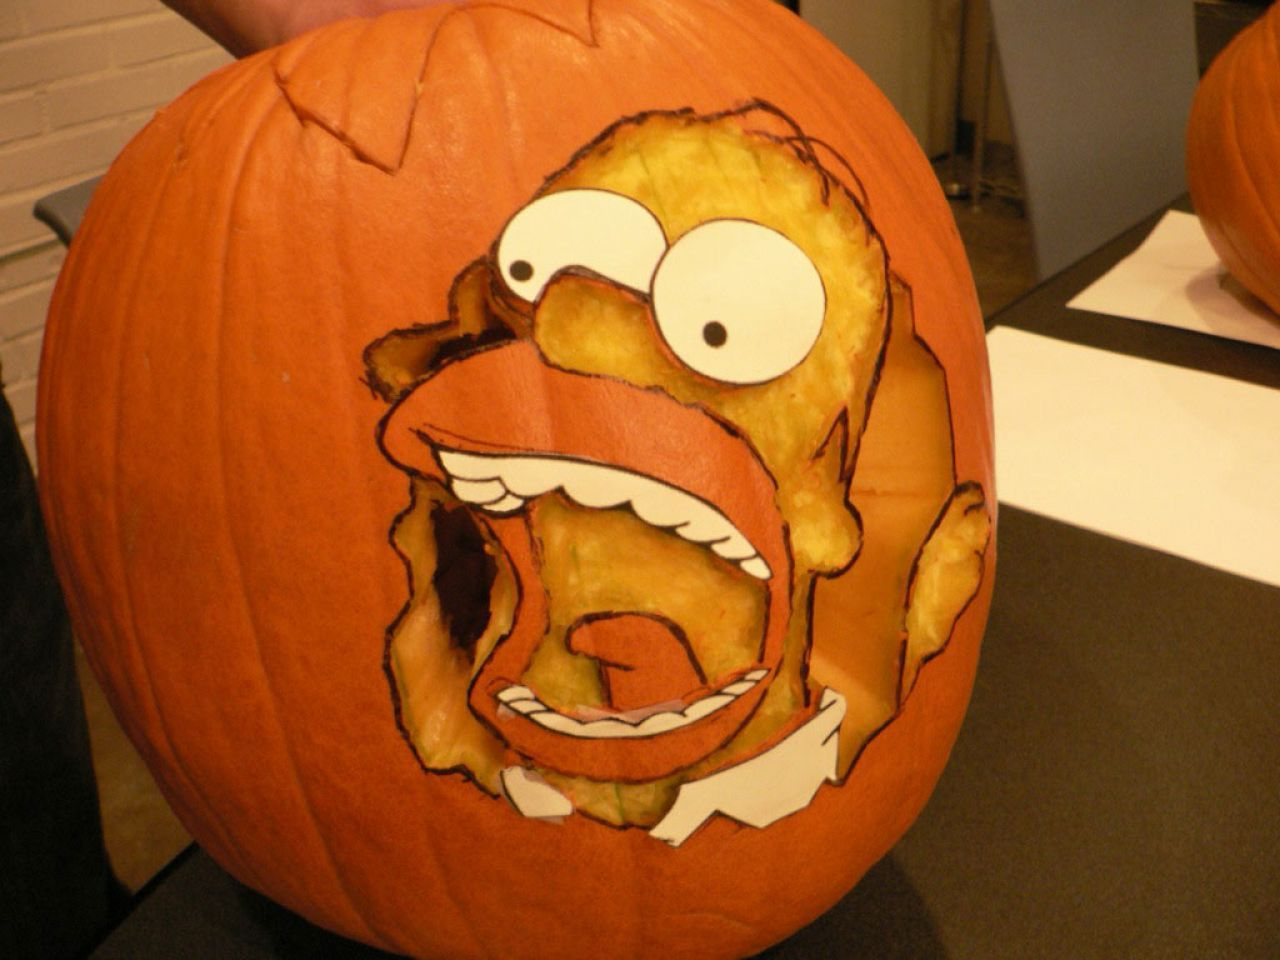 Funny Homer The Simpsons Halloween pumpkin carving | Halloween ...